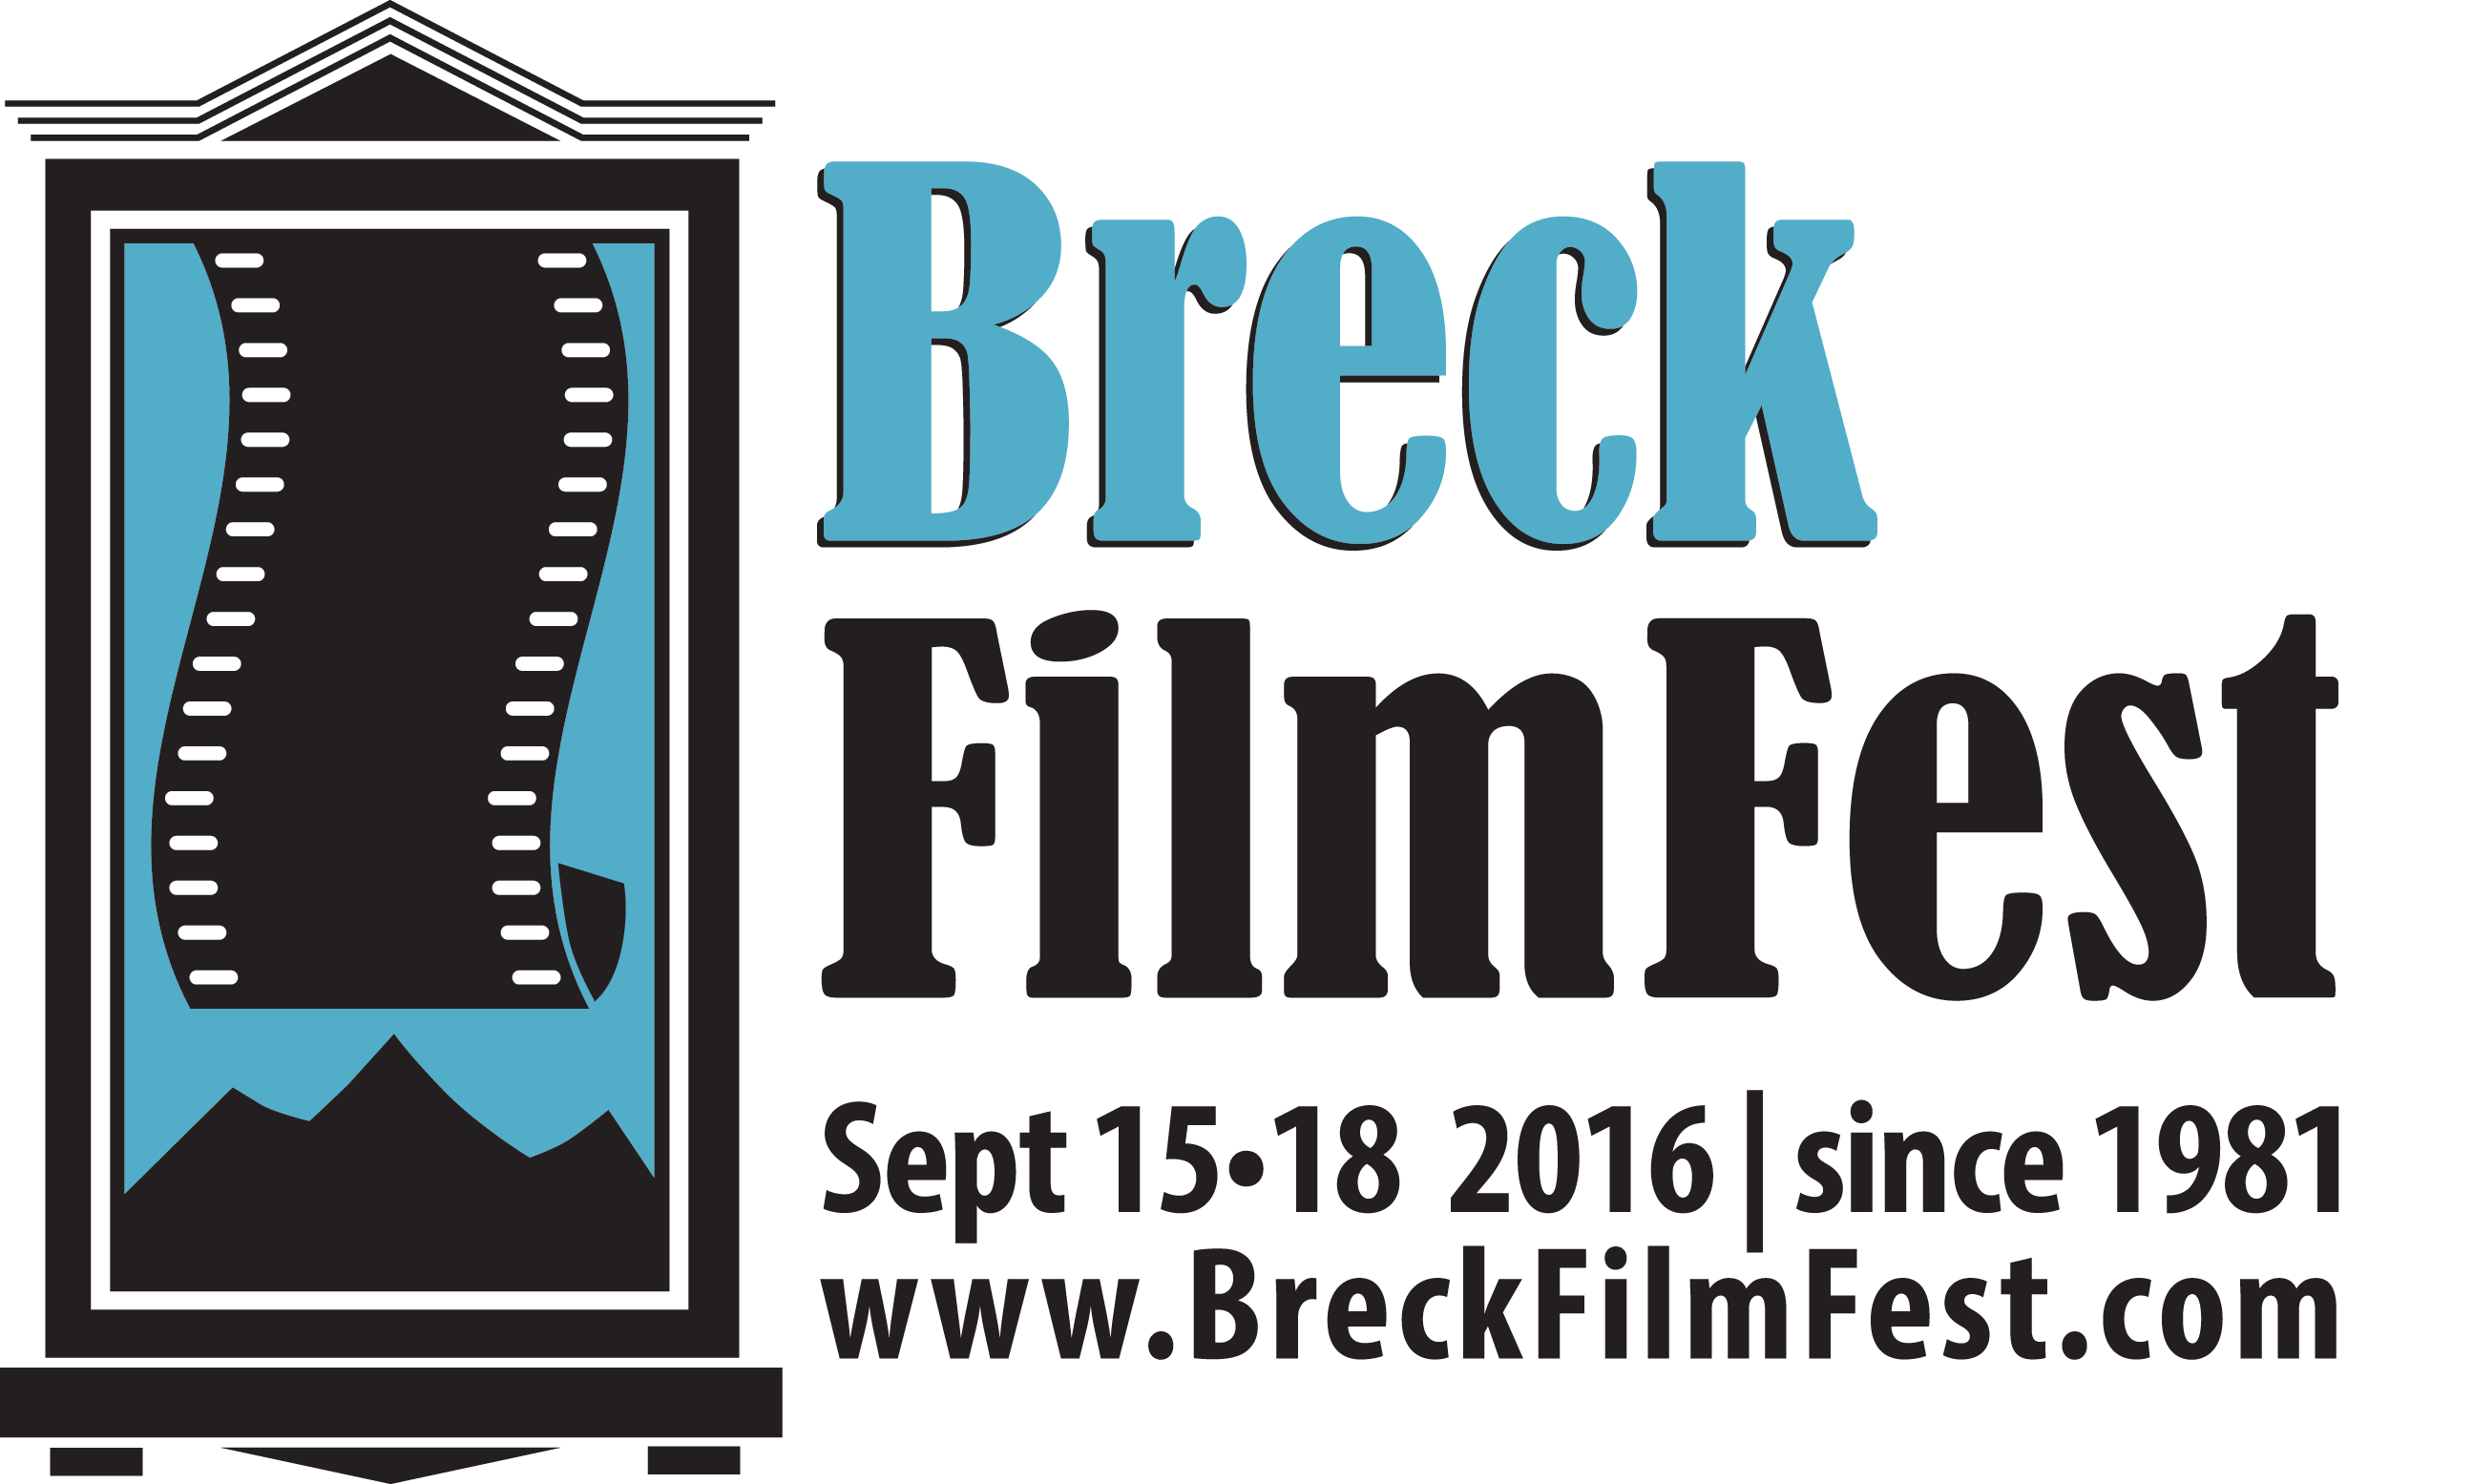 News clipart source information. Breckenridge film festival issues